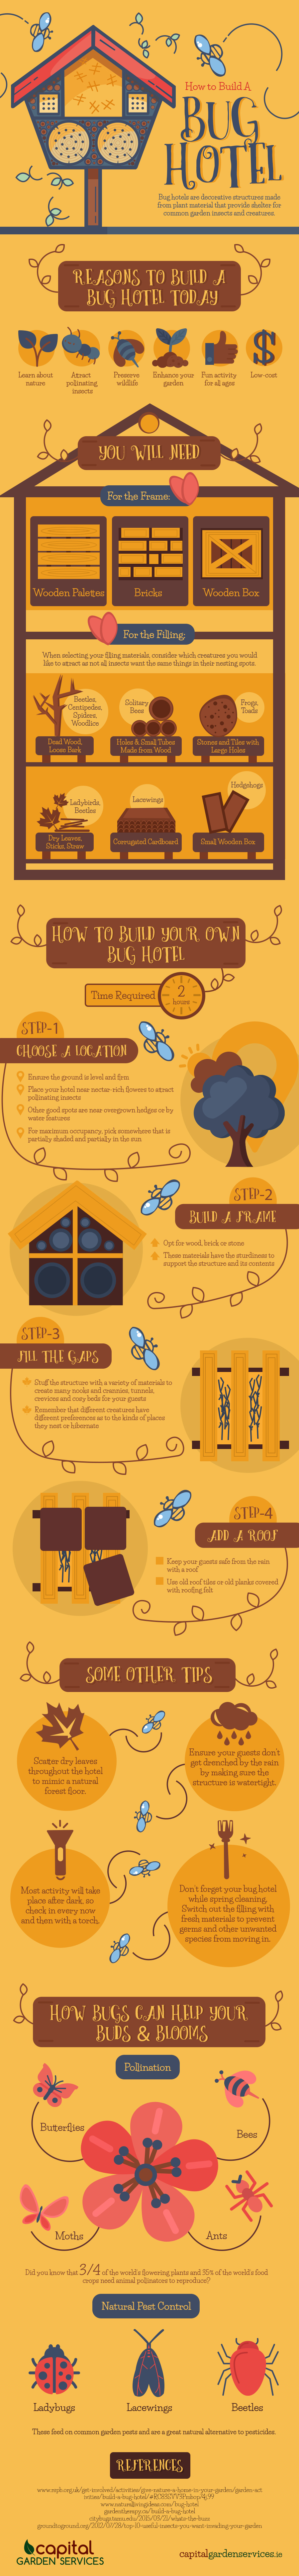 How to build a bug hotel (Infographic by Capital Garden Services)